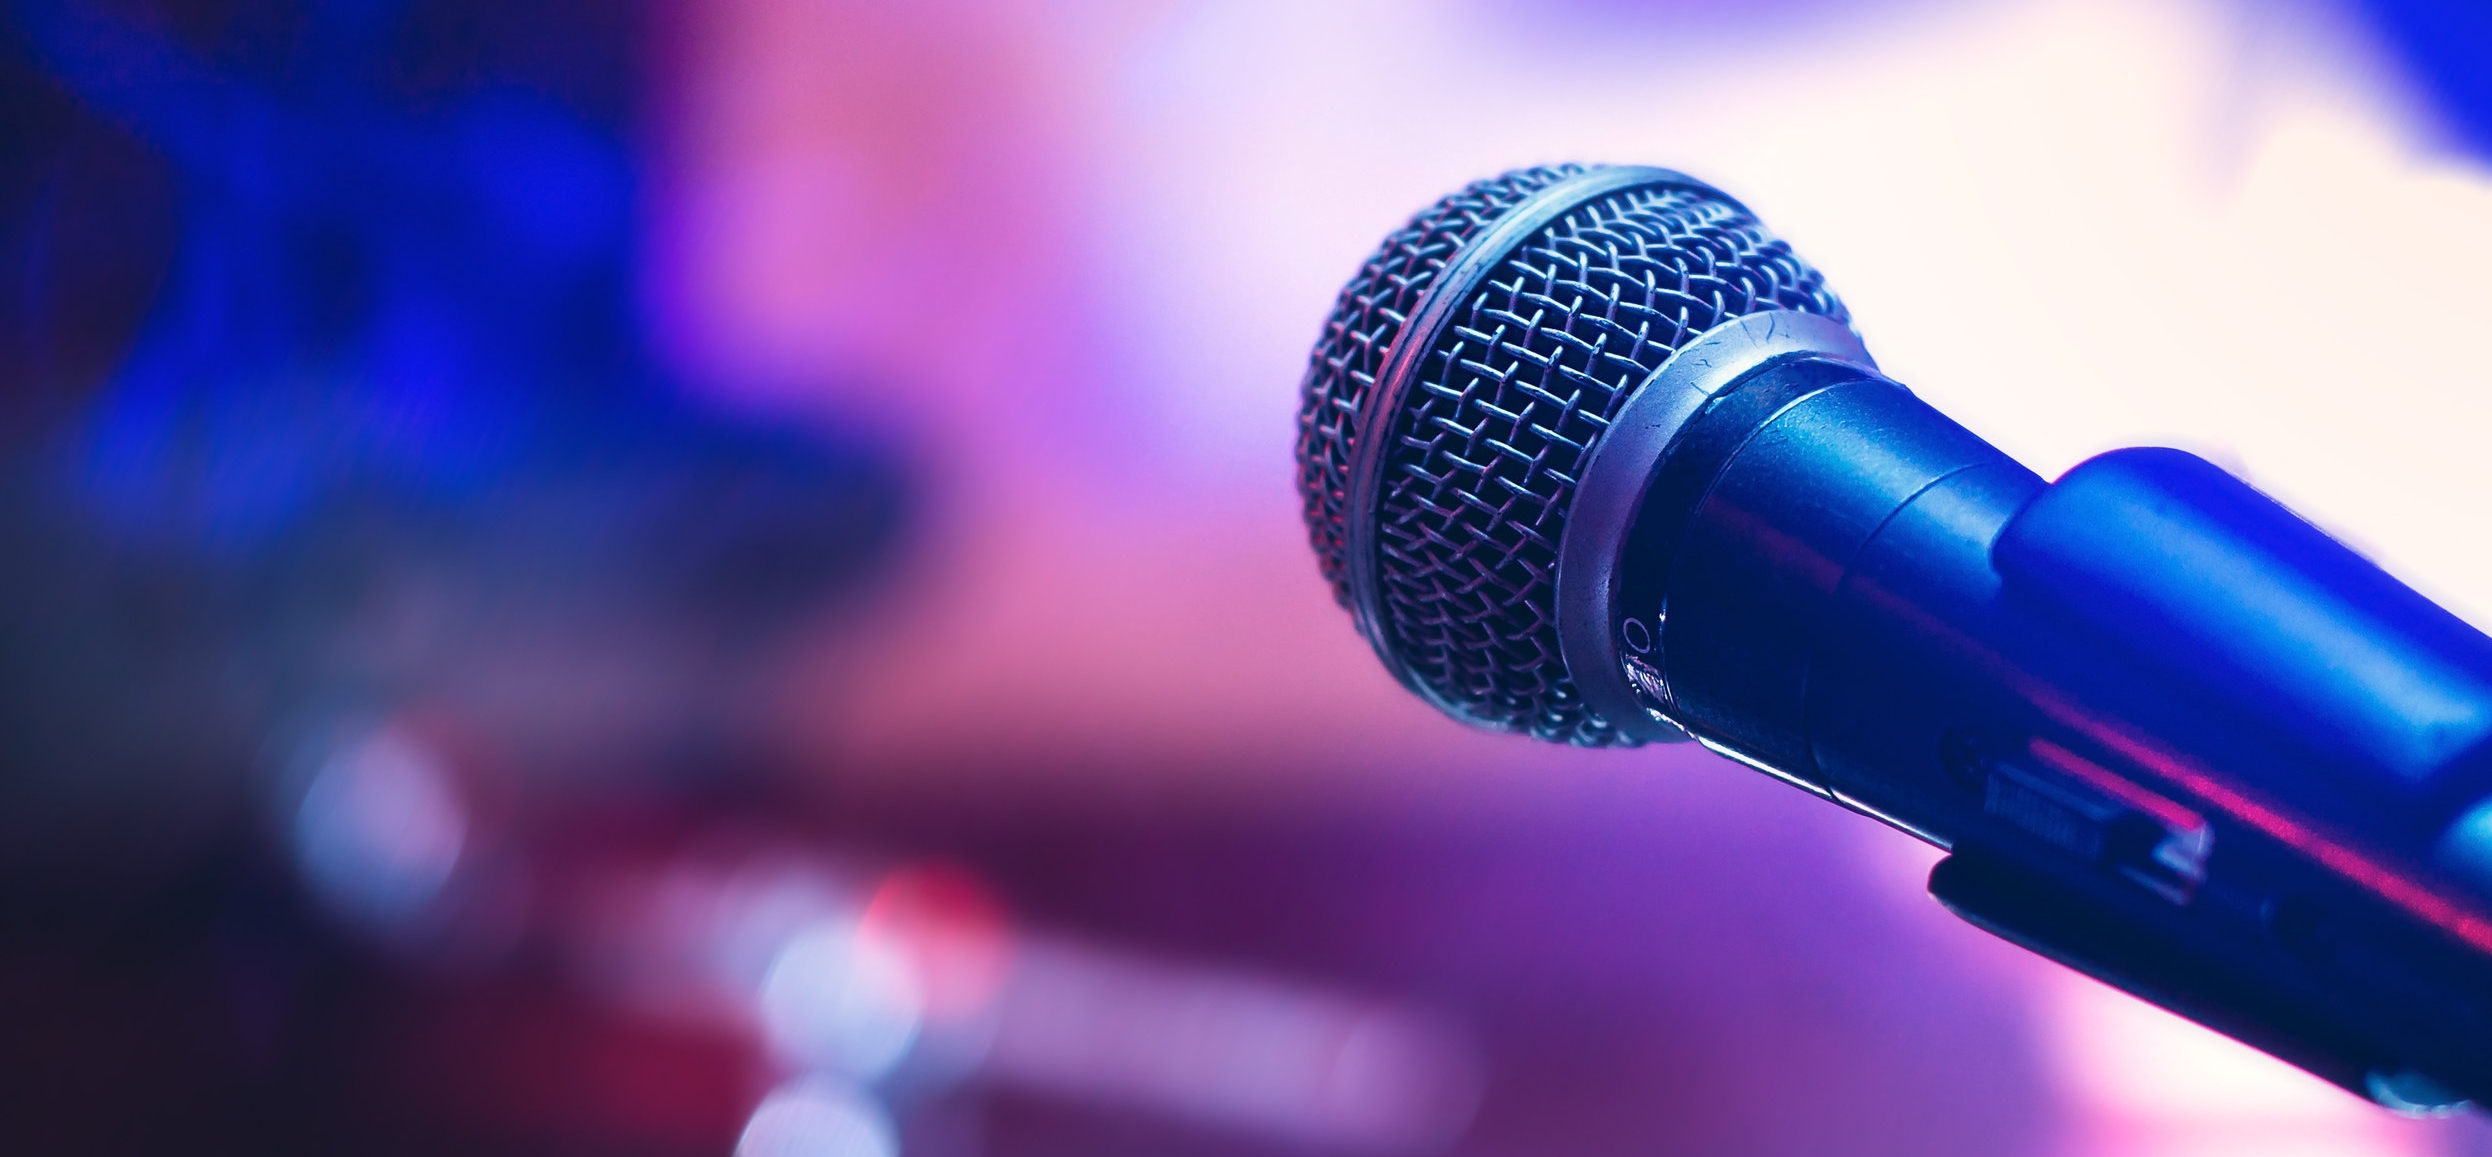 Image: A microphone in front of a purple background.